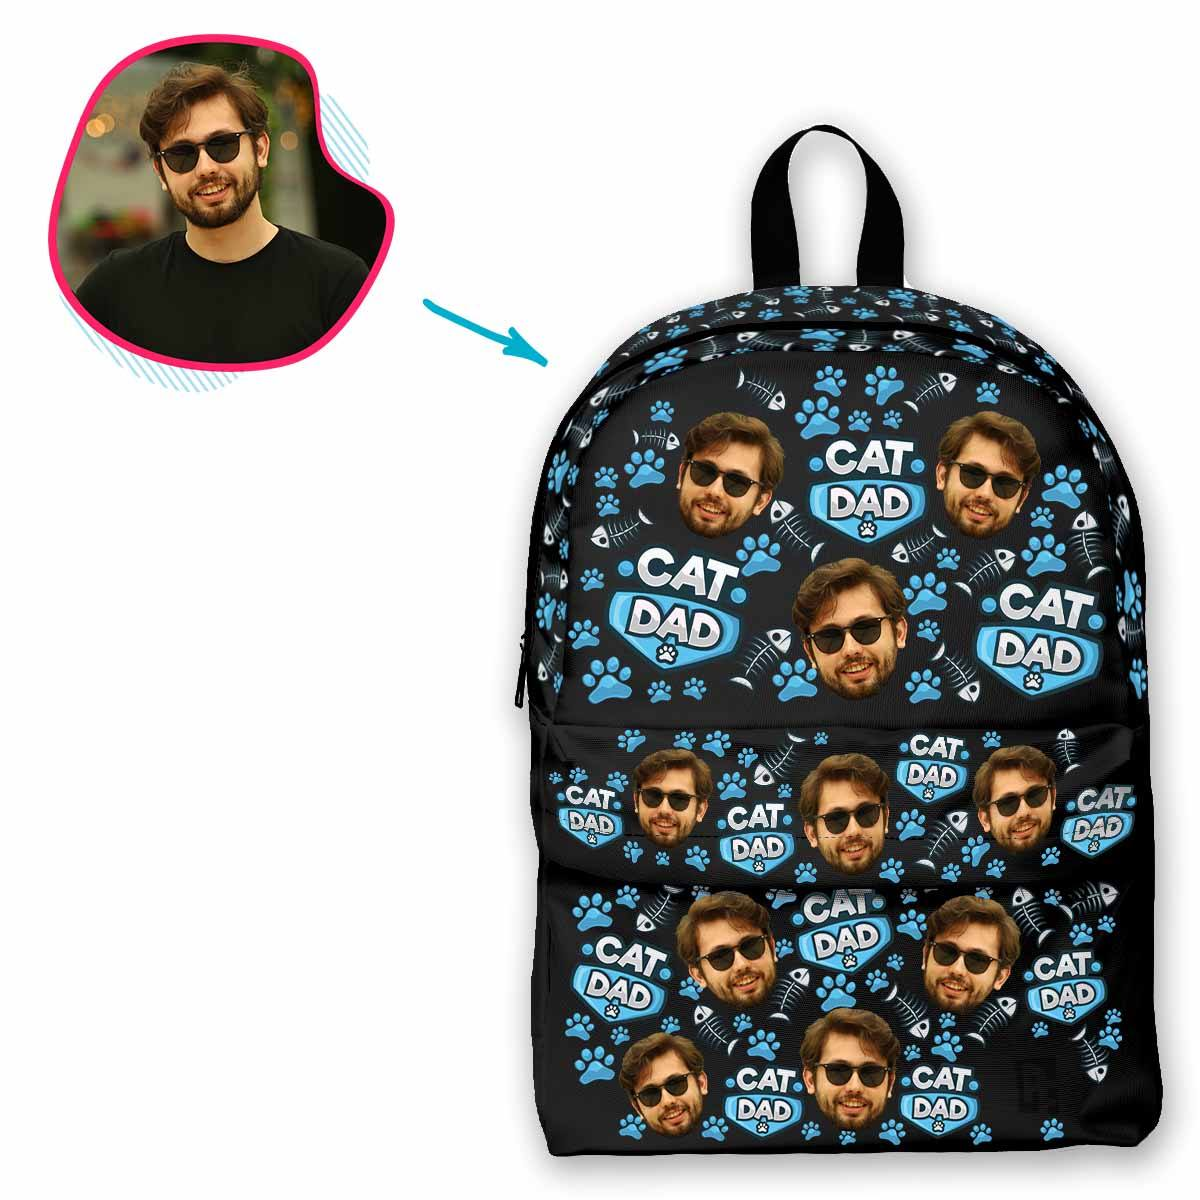 dark Cat Dad classic backpack personalized with photo of face printed on it